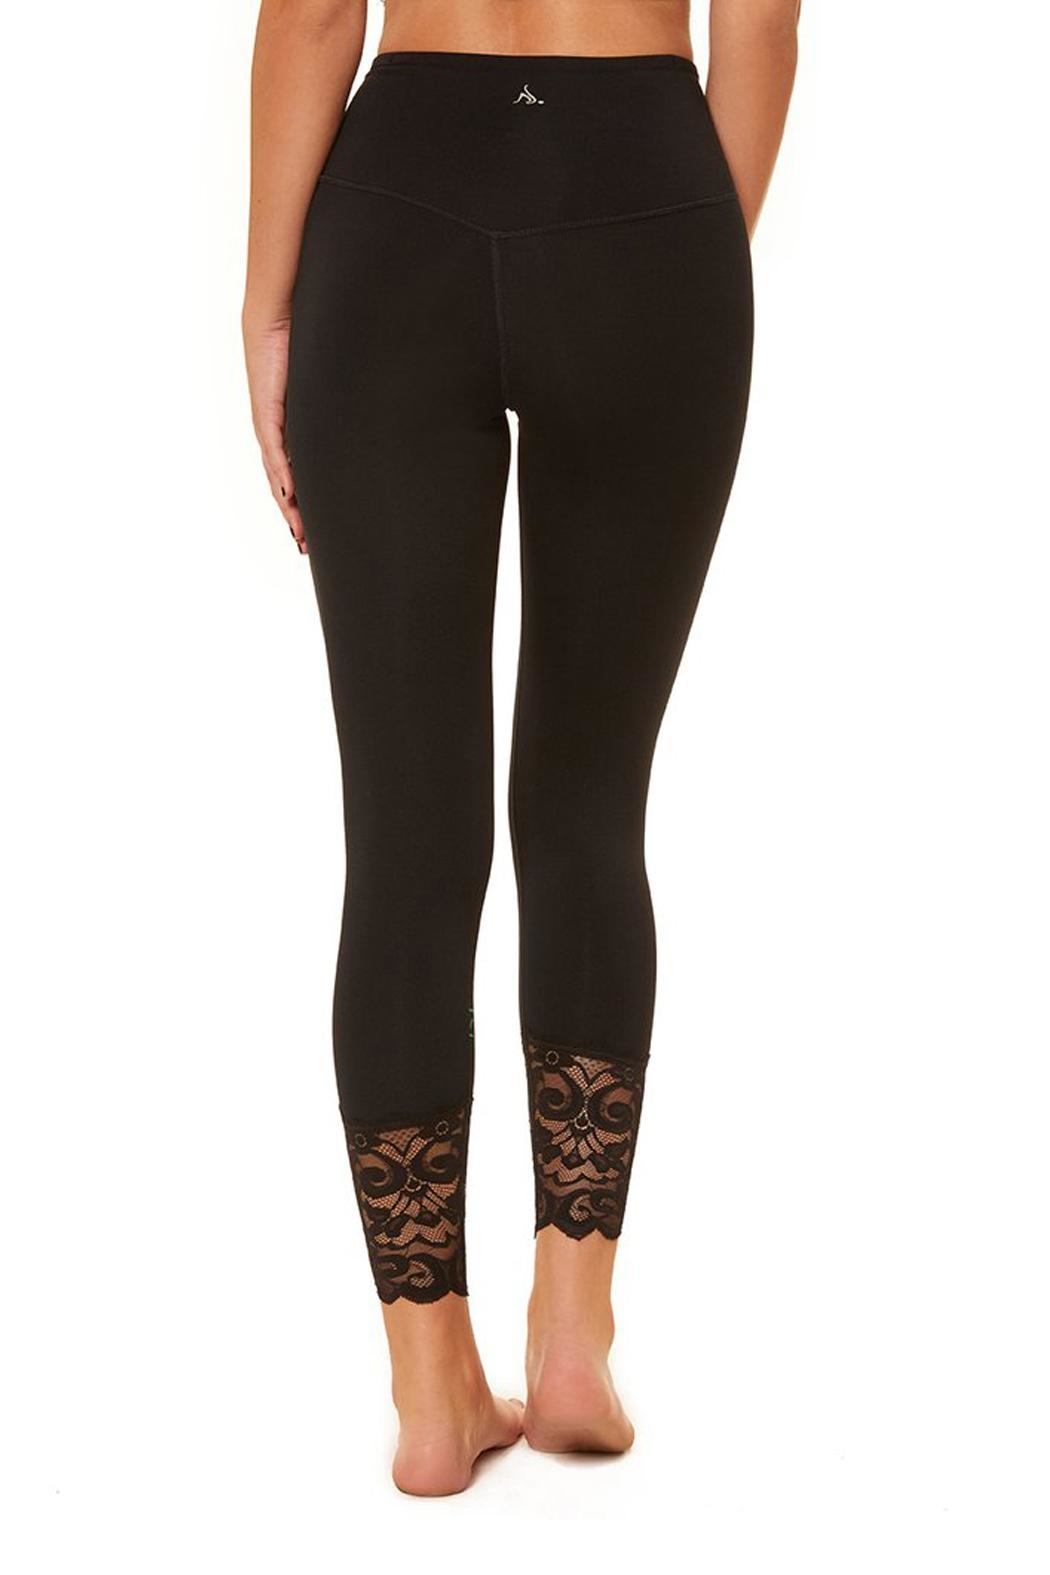 Nancy Rose Ruthie Legging - Side Cropped Image